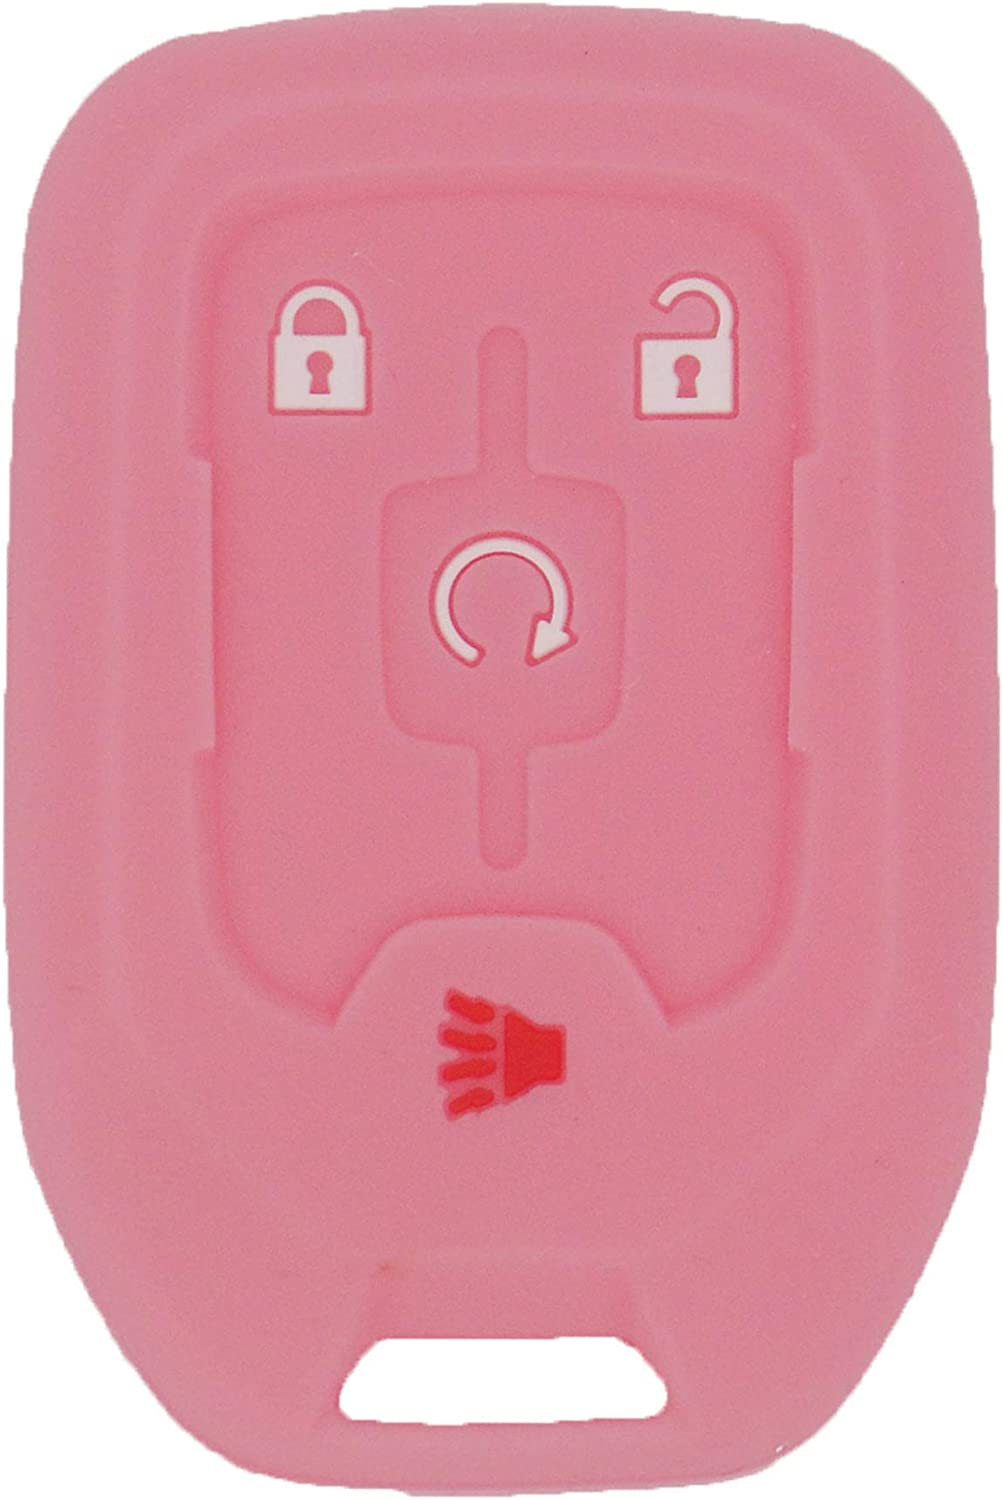 22984995,Red Pink fit with HYQ1AA 13584512 LemSa 2Pcs 5 Buttons Silicone Key Fob Cover Case Remote Keyless Protector Bag Holder Compatible with GMC Terrain 2018 2019 2020 13591388